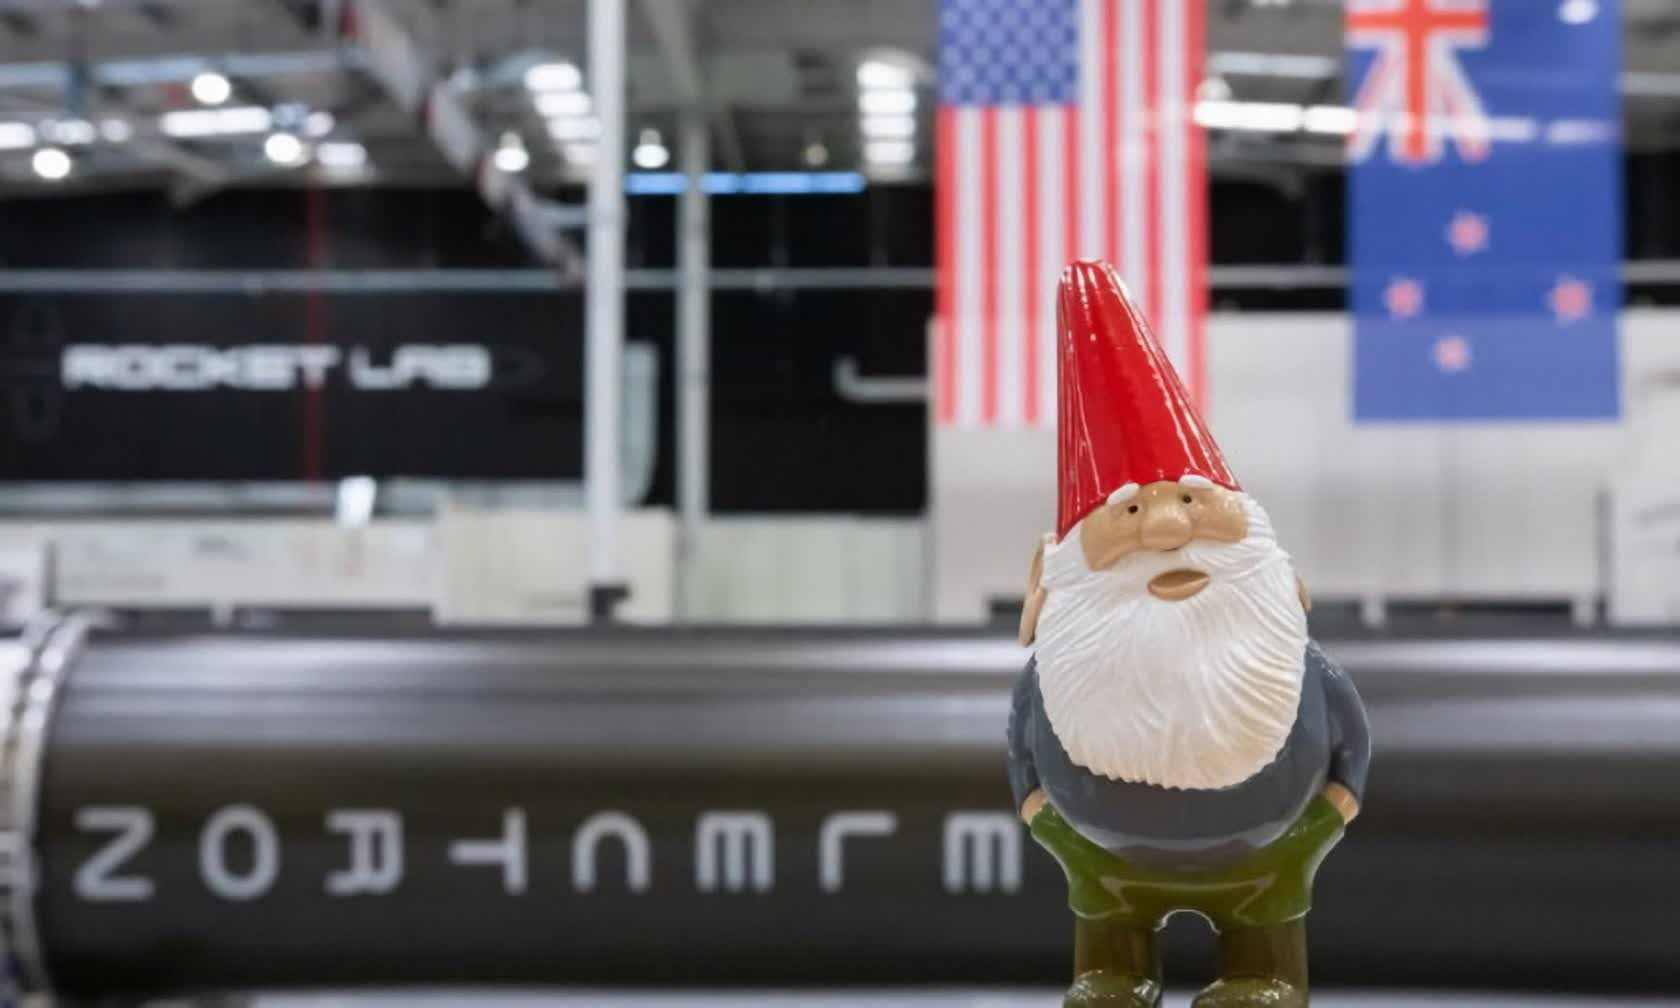 Valve CEO Gabe Newell will launch a garden gnome into space for charity